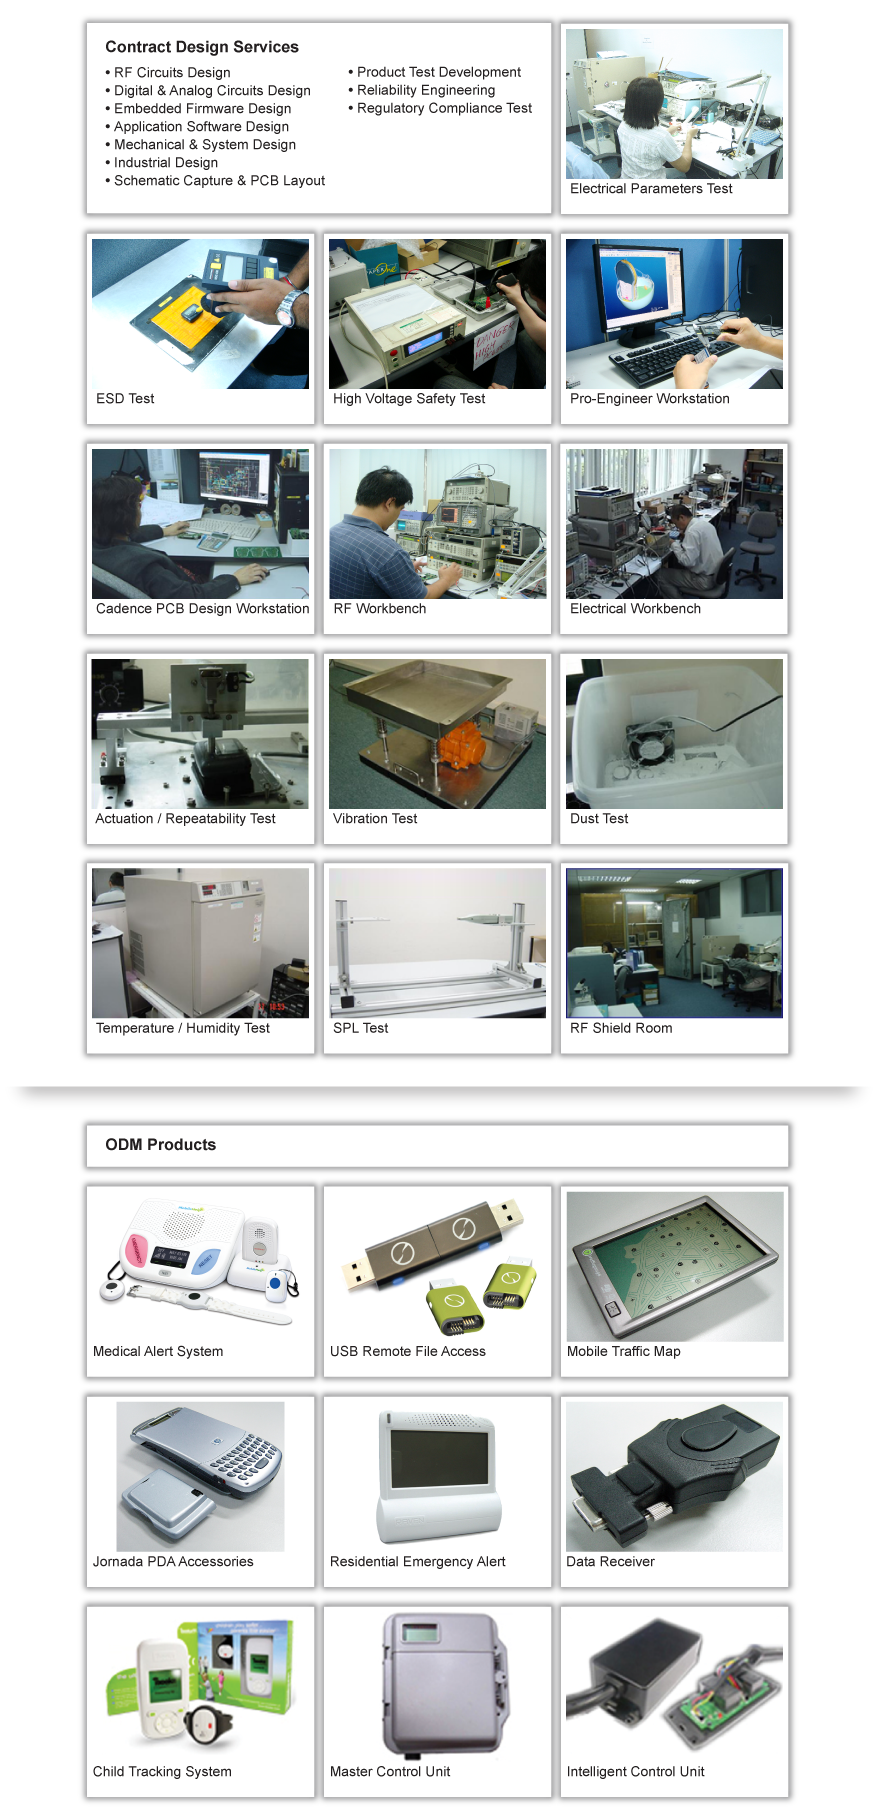 ODM-Products.png